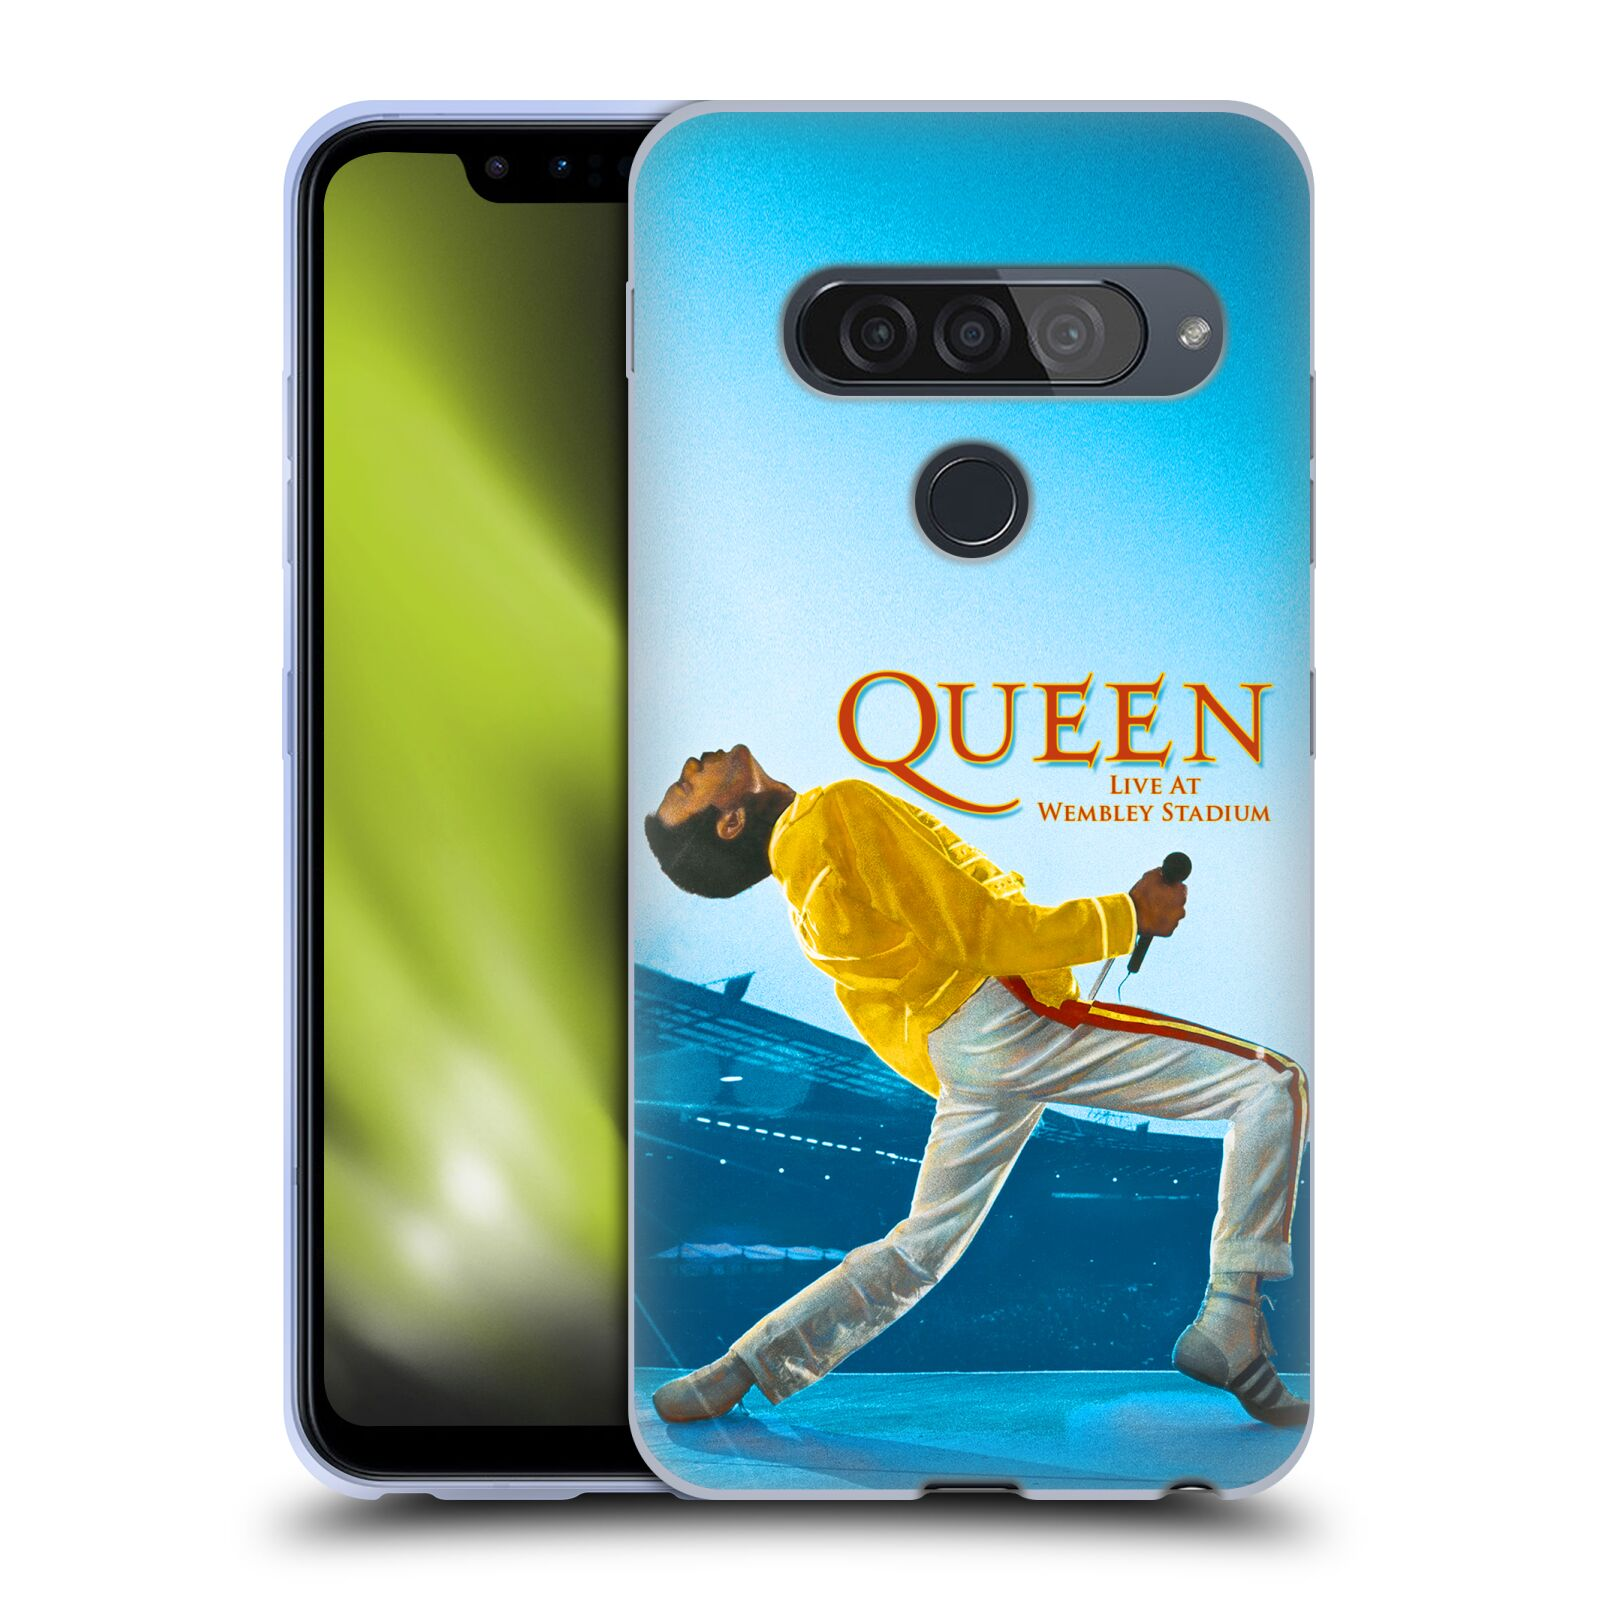 Silikonové pouzdro na mobil LG G8s ThinQ - Head Case - Queen - Freddie Mercury